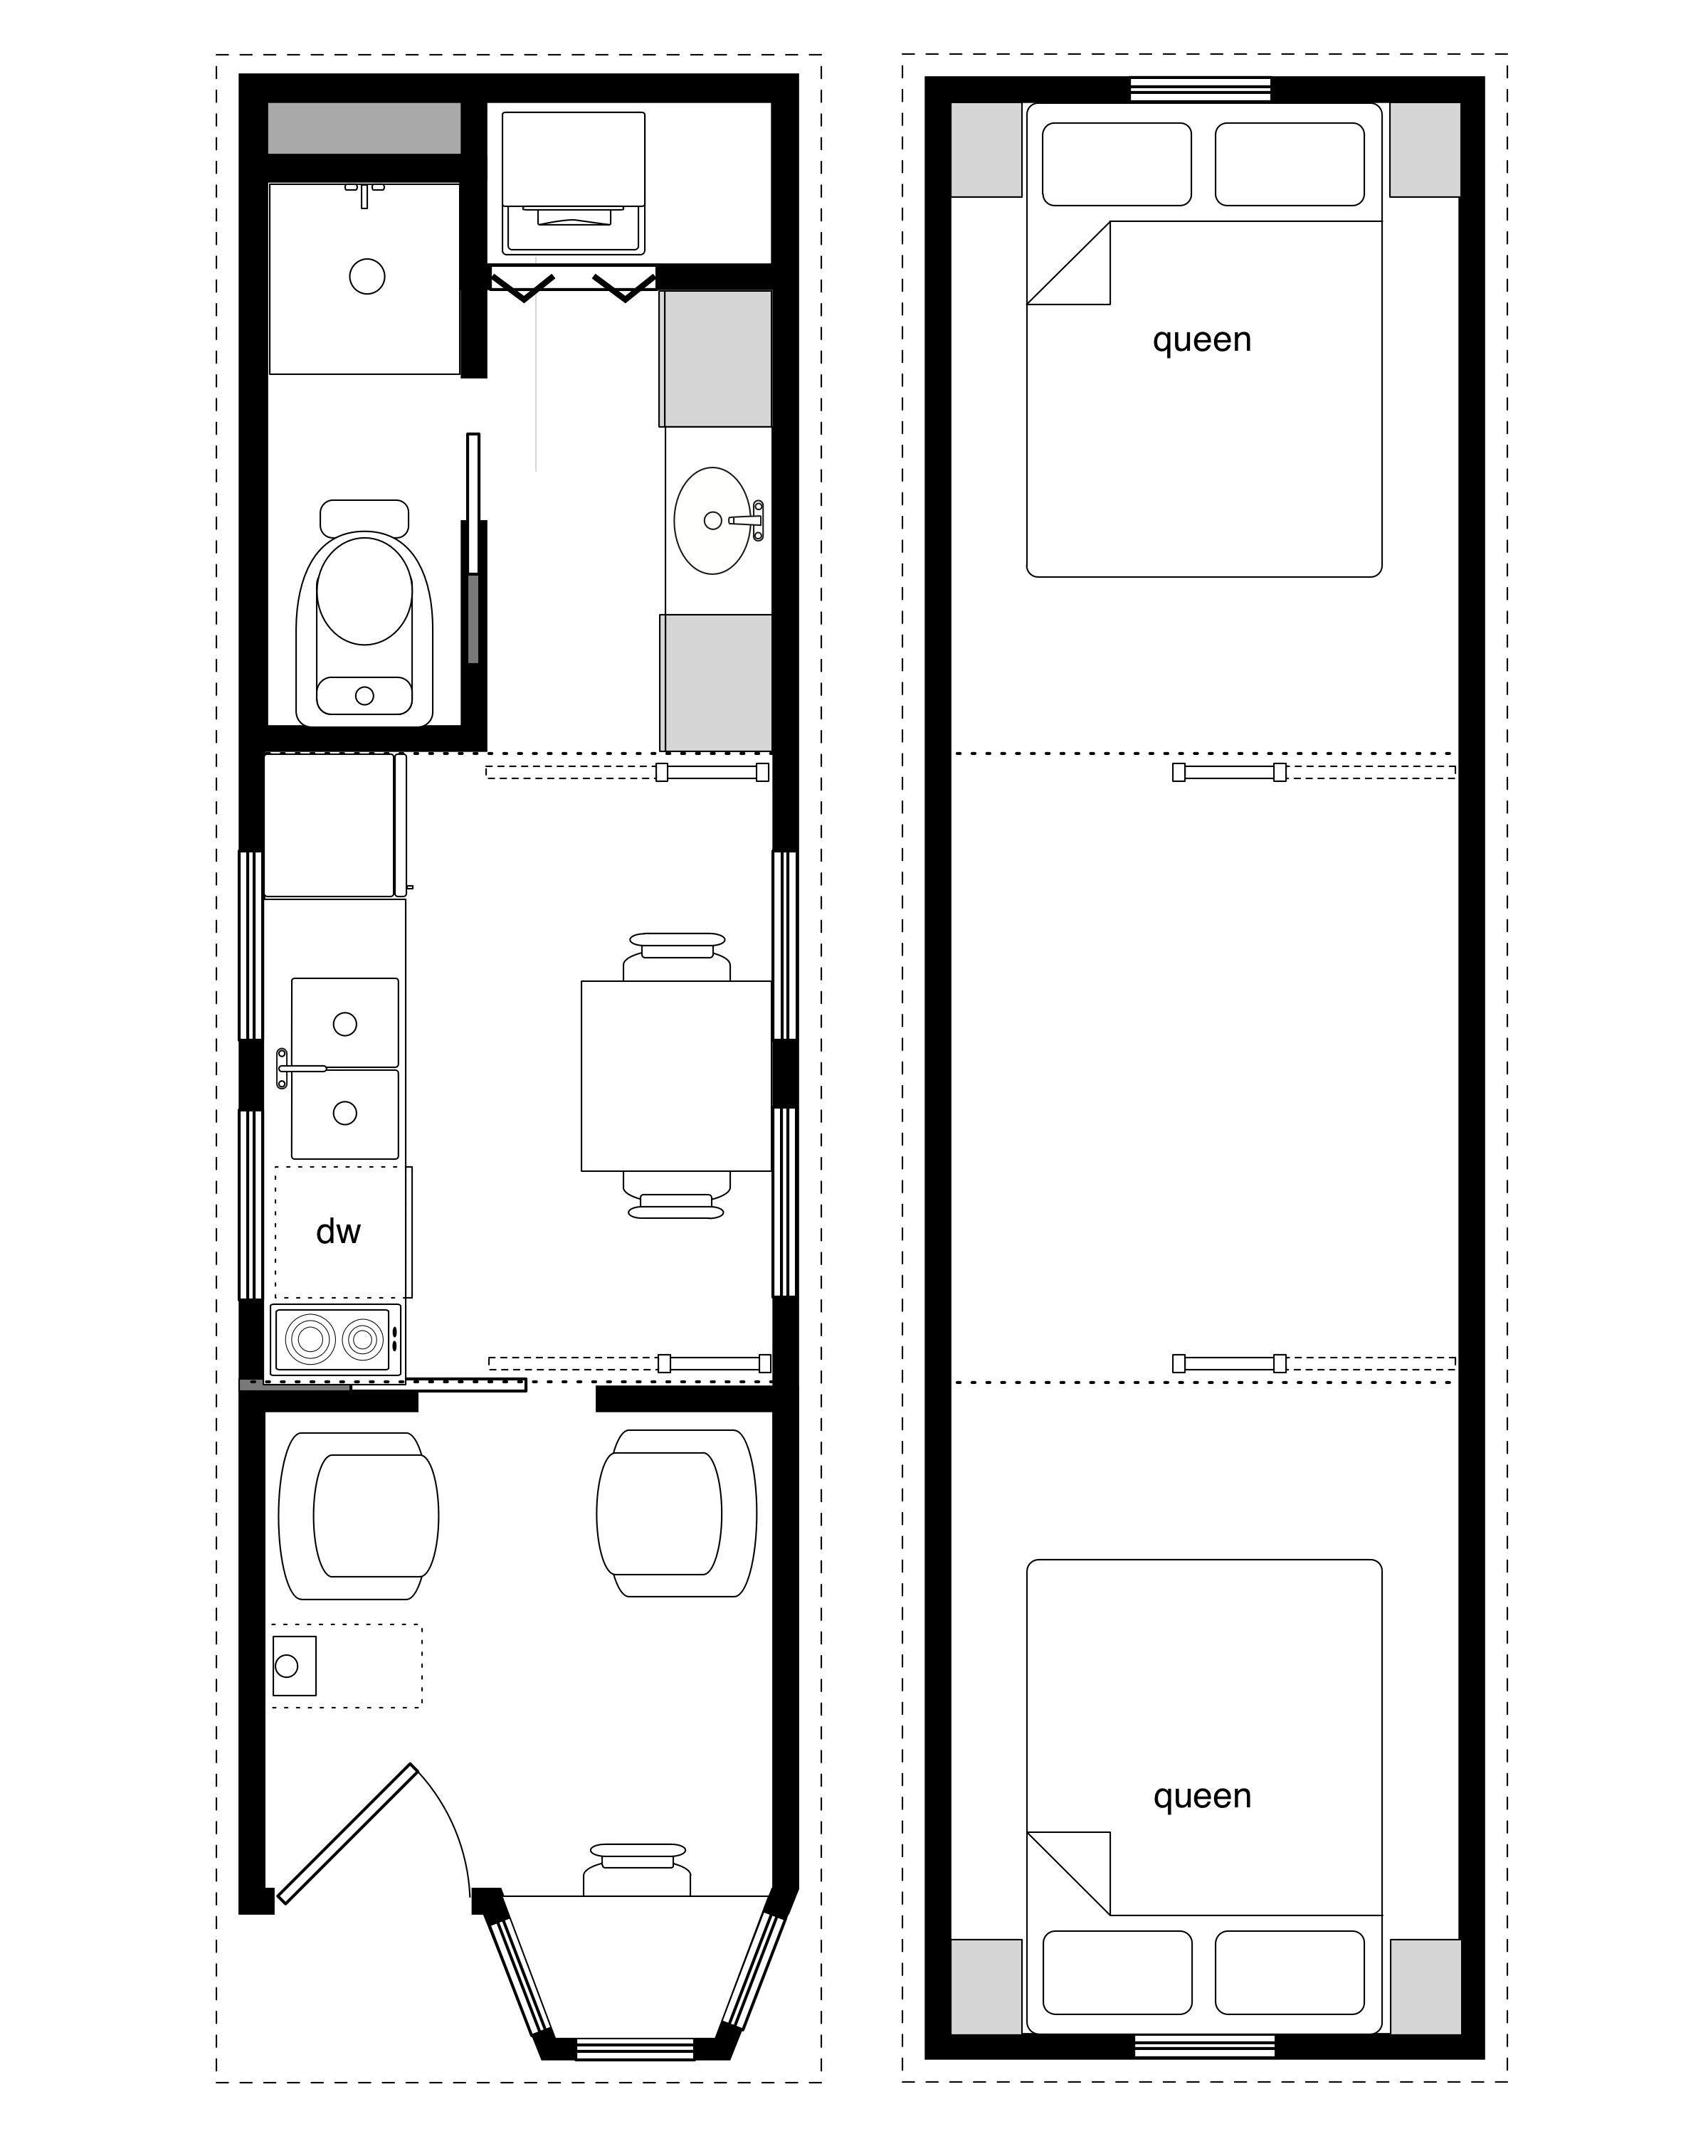 Coastal cottage with bay window 8' x 28' tiny house framing plans by michael janzen at tiny house design 10 this is 8 of 8 s le floorplans